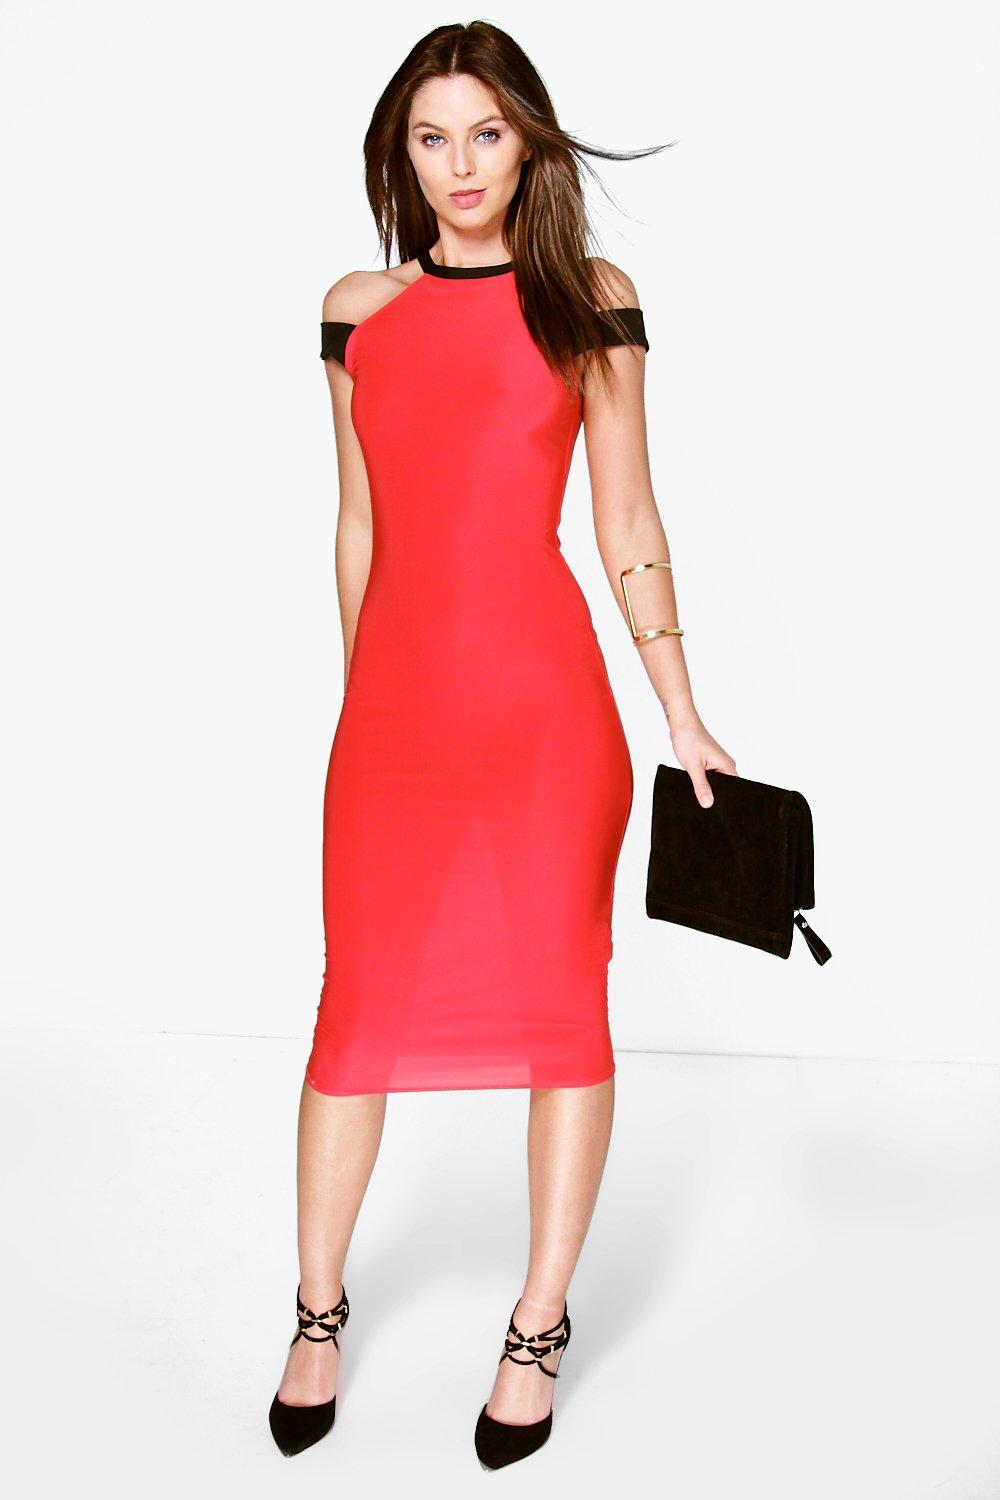 Lostrita Double Strap Contrast Midi Dress